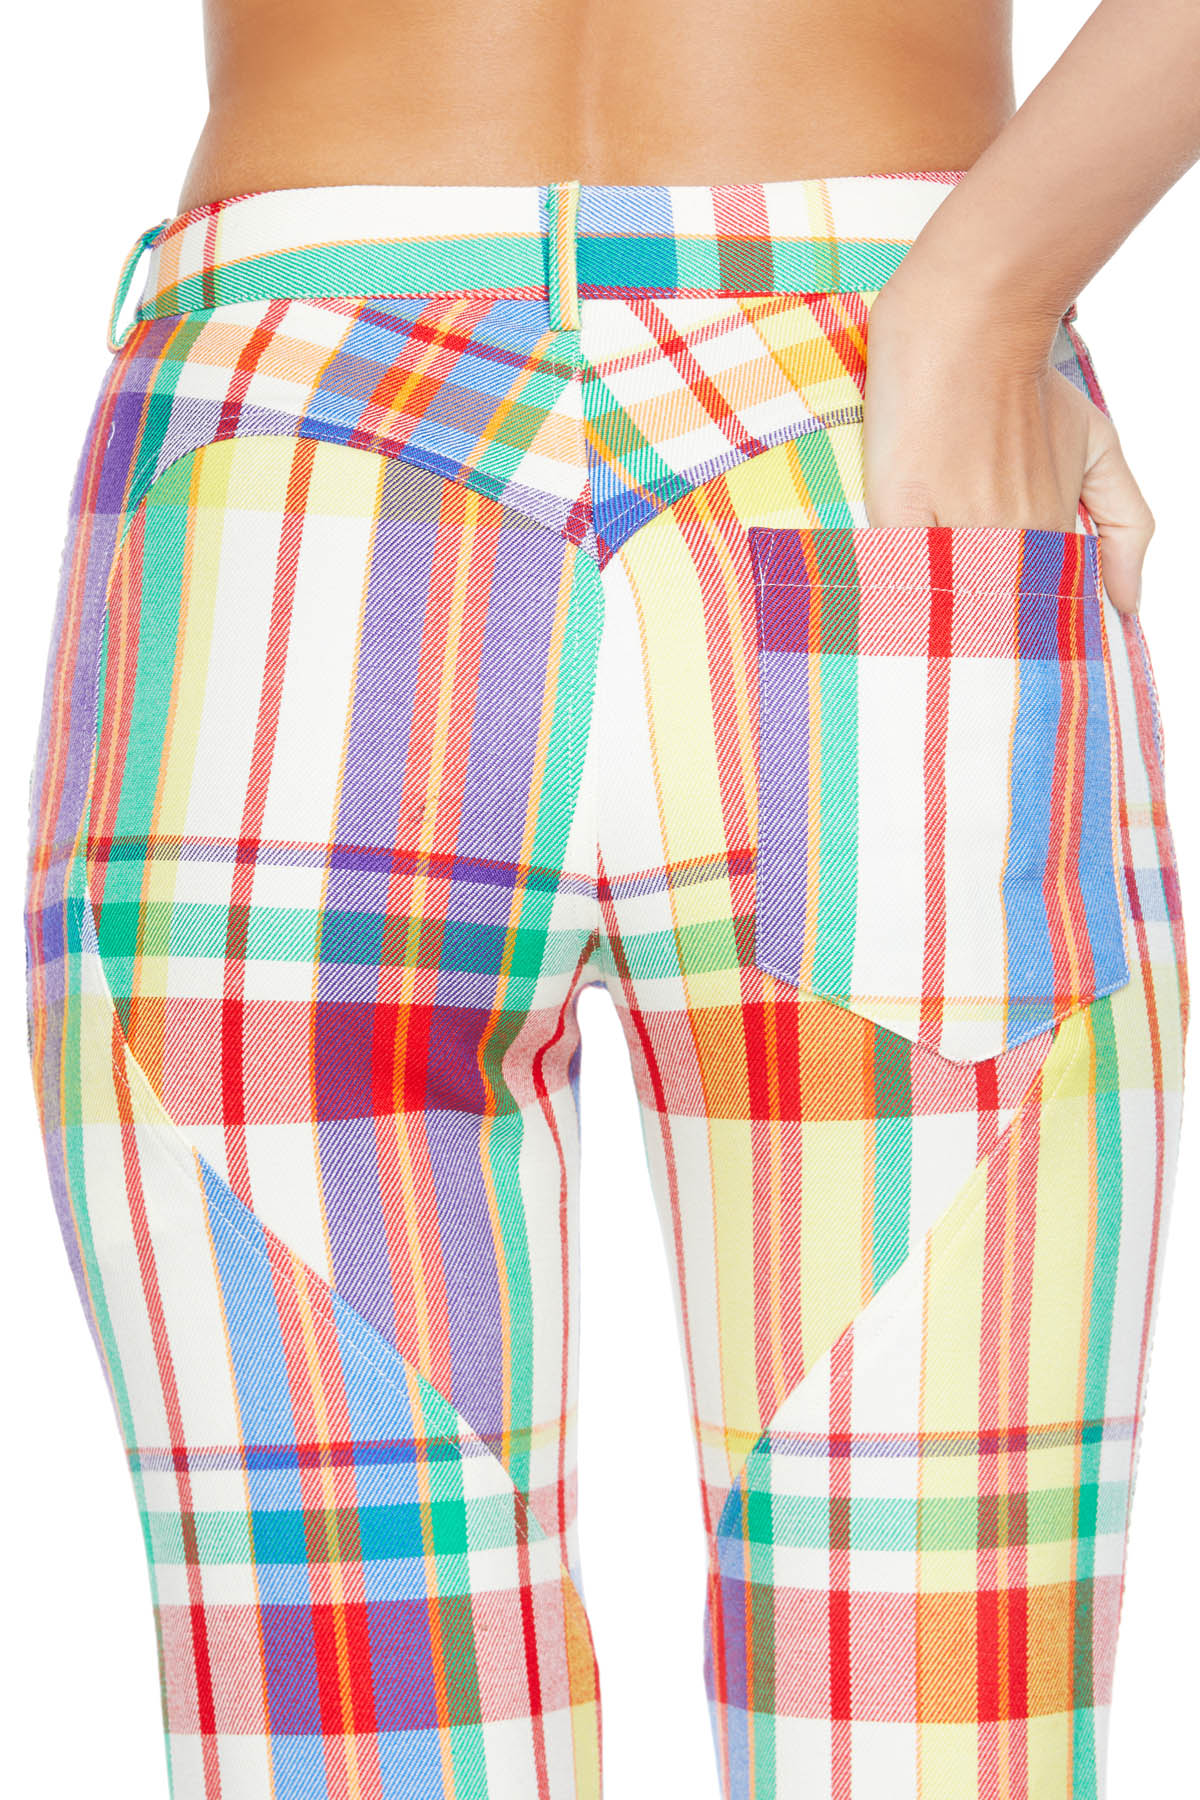 Straight leg pant features heart-shaped seaming on back. Detailed with AREA logo hardware button closure. Available in Rainbow.